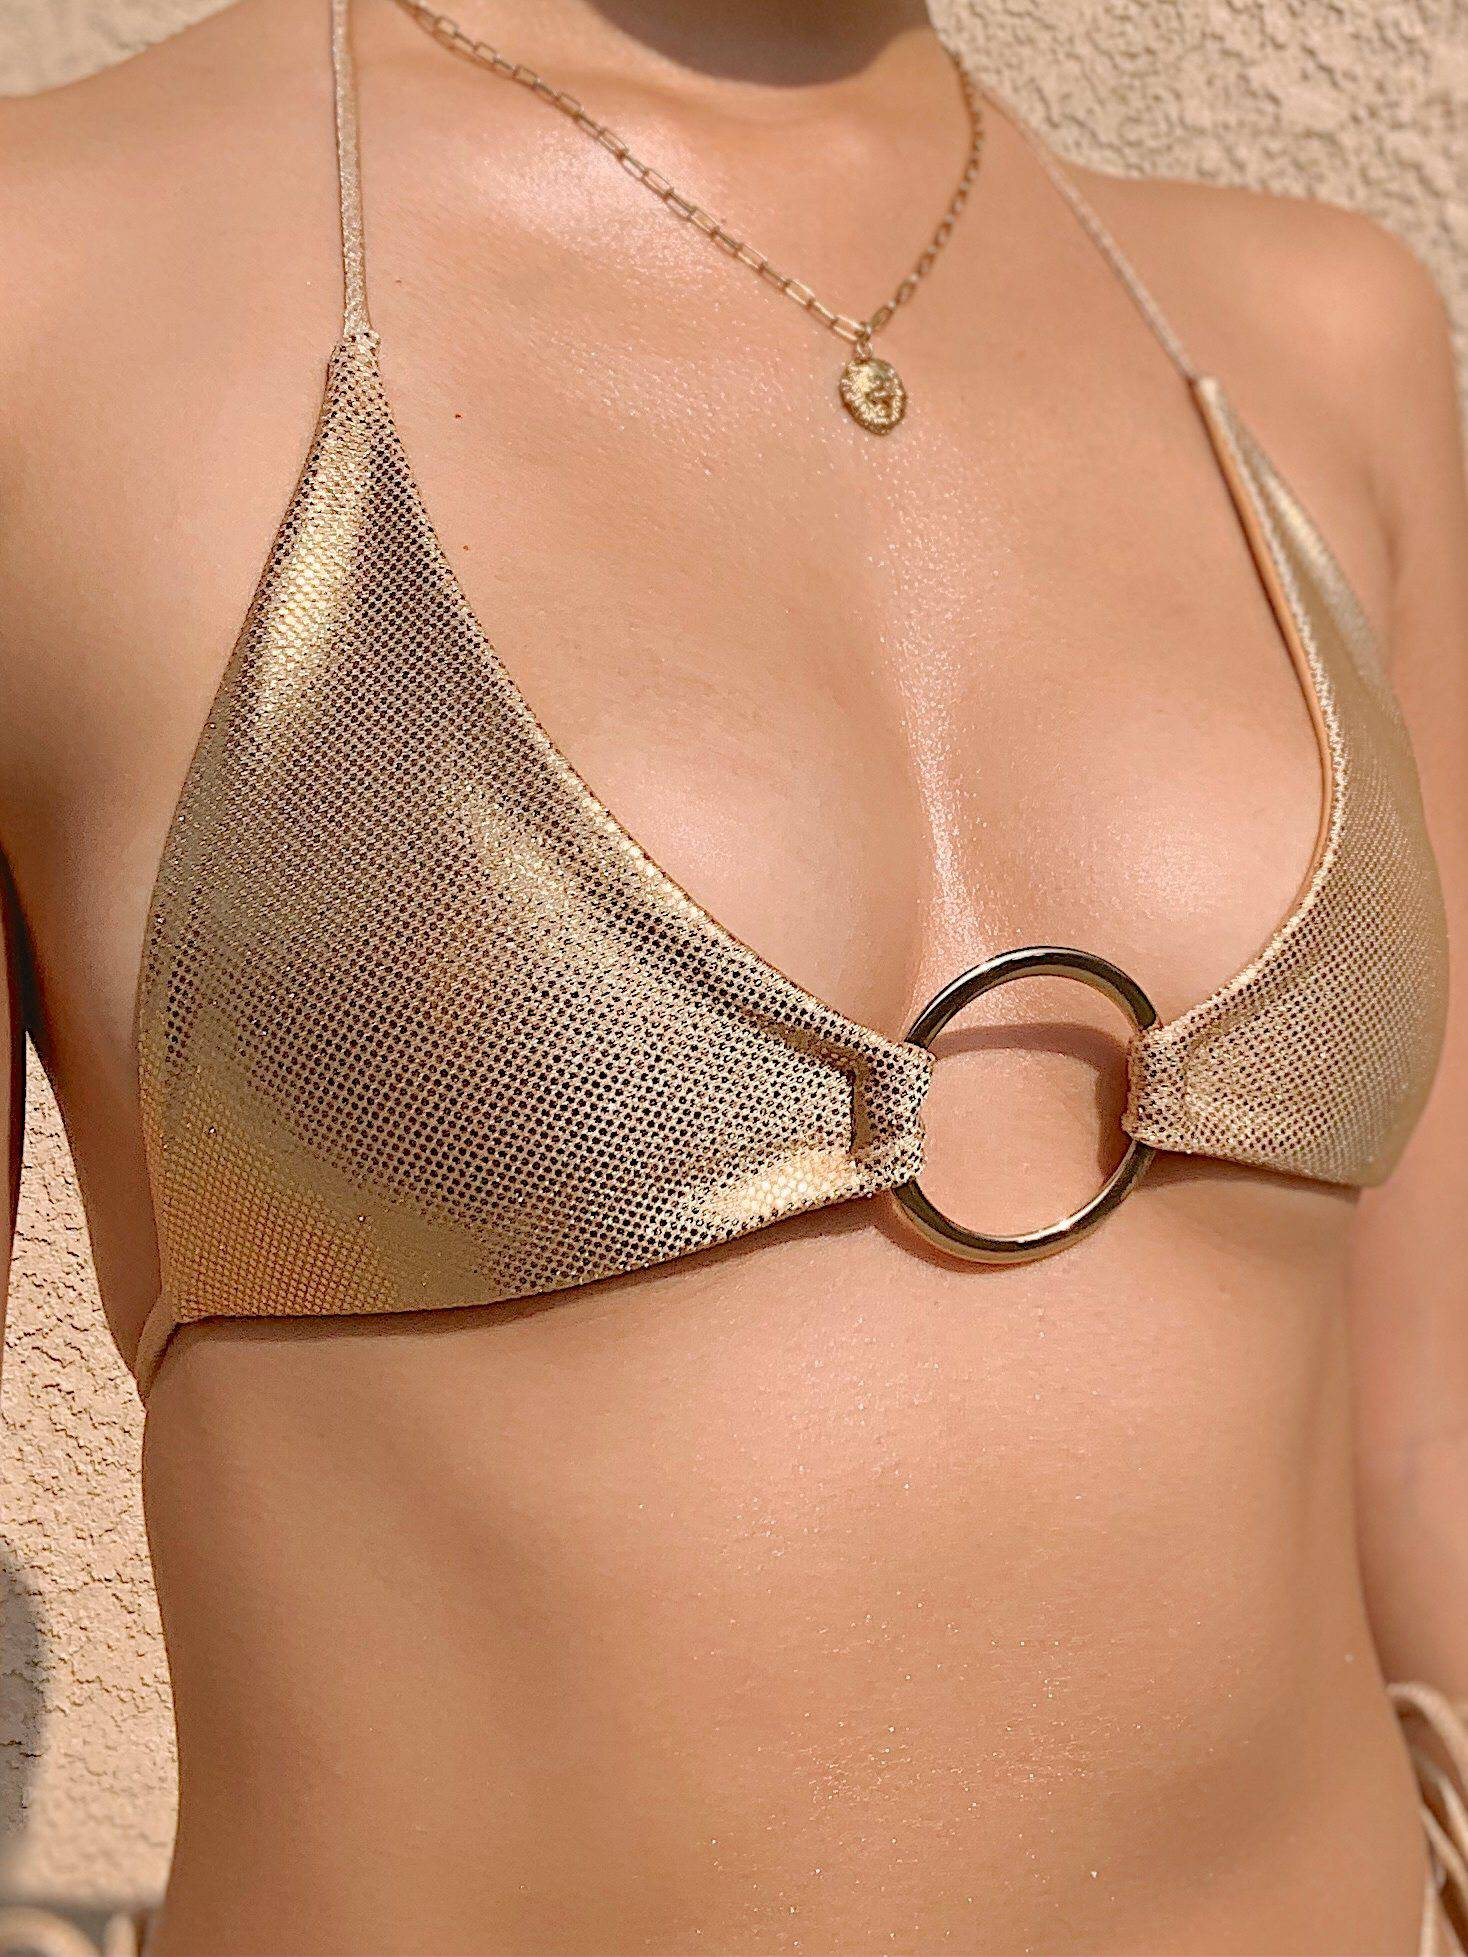 Alysanne Triangle Bikini Top - Metallic Gold With Gold Ring - Lovy Bikinis